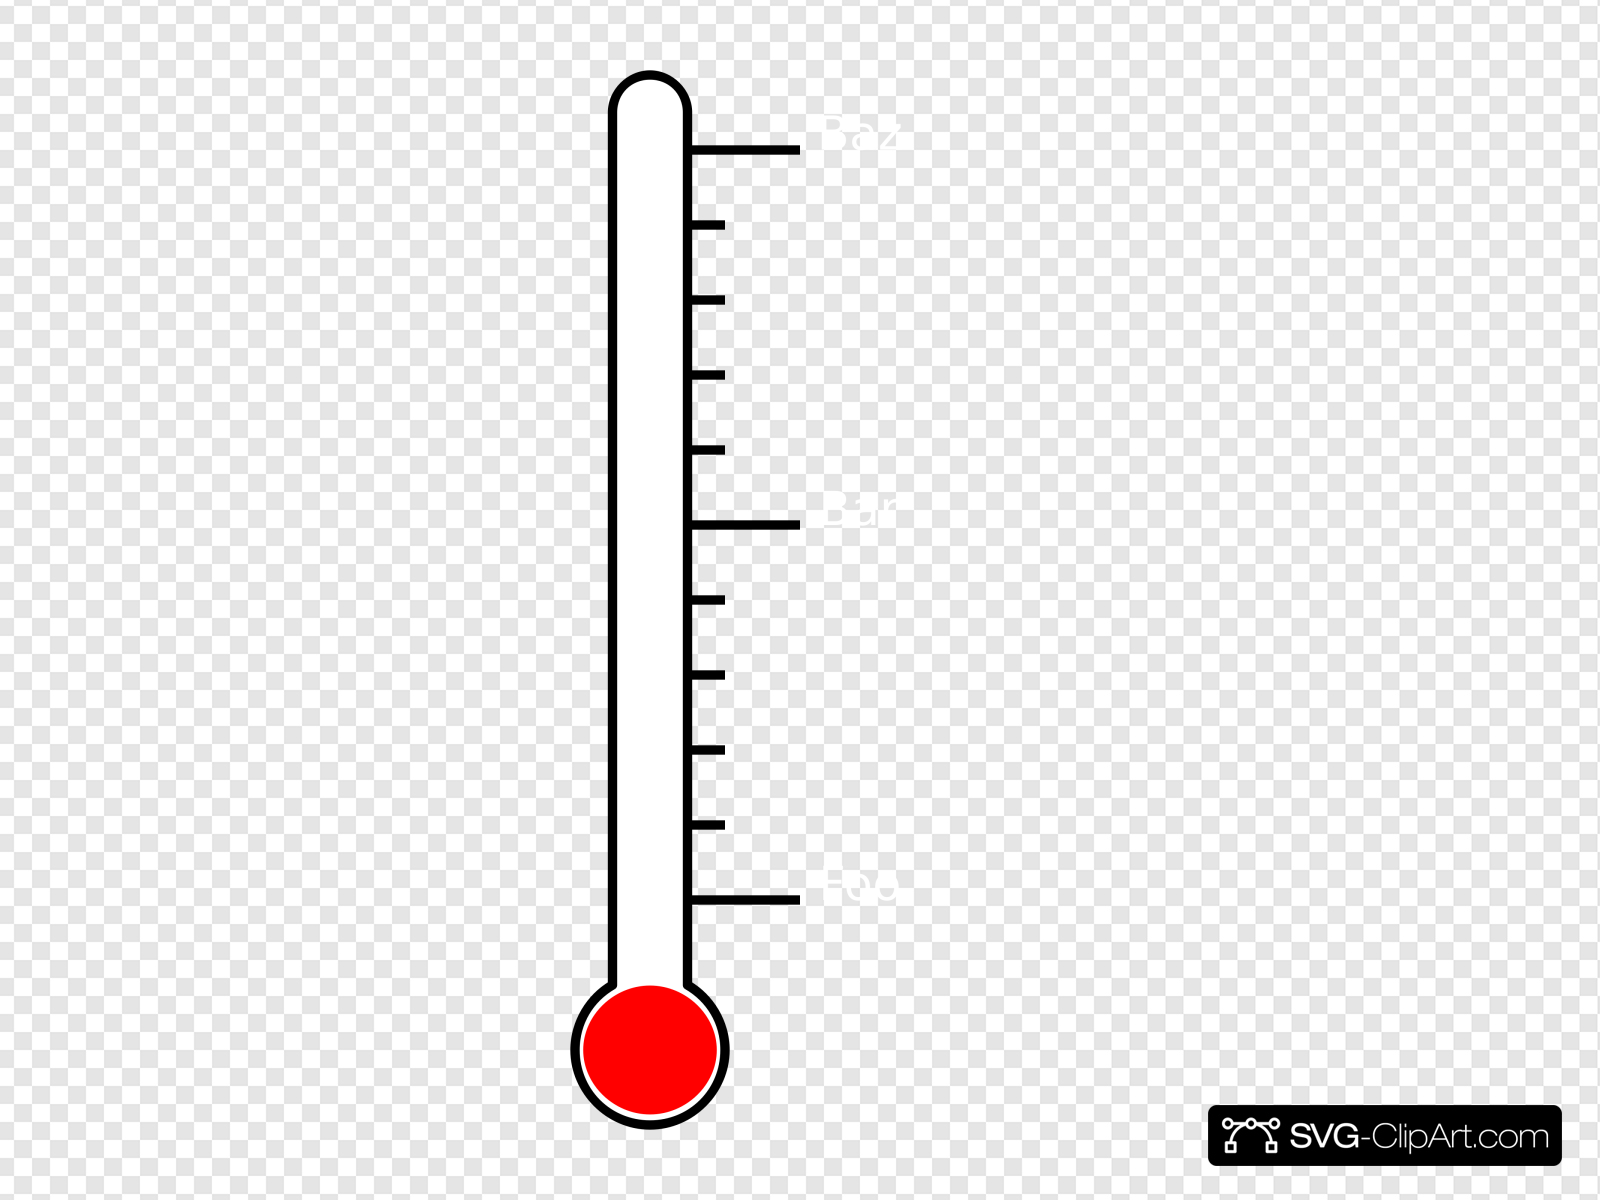 Blank Thermometer Clip art, Icon and SVG.